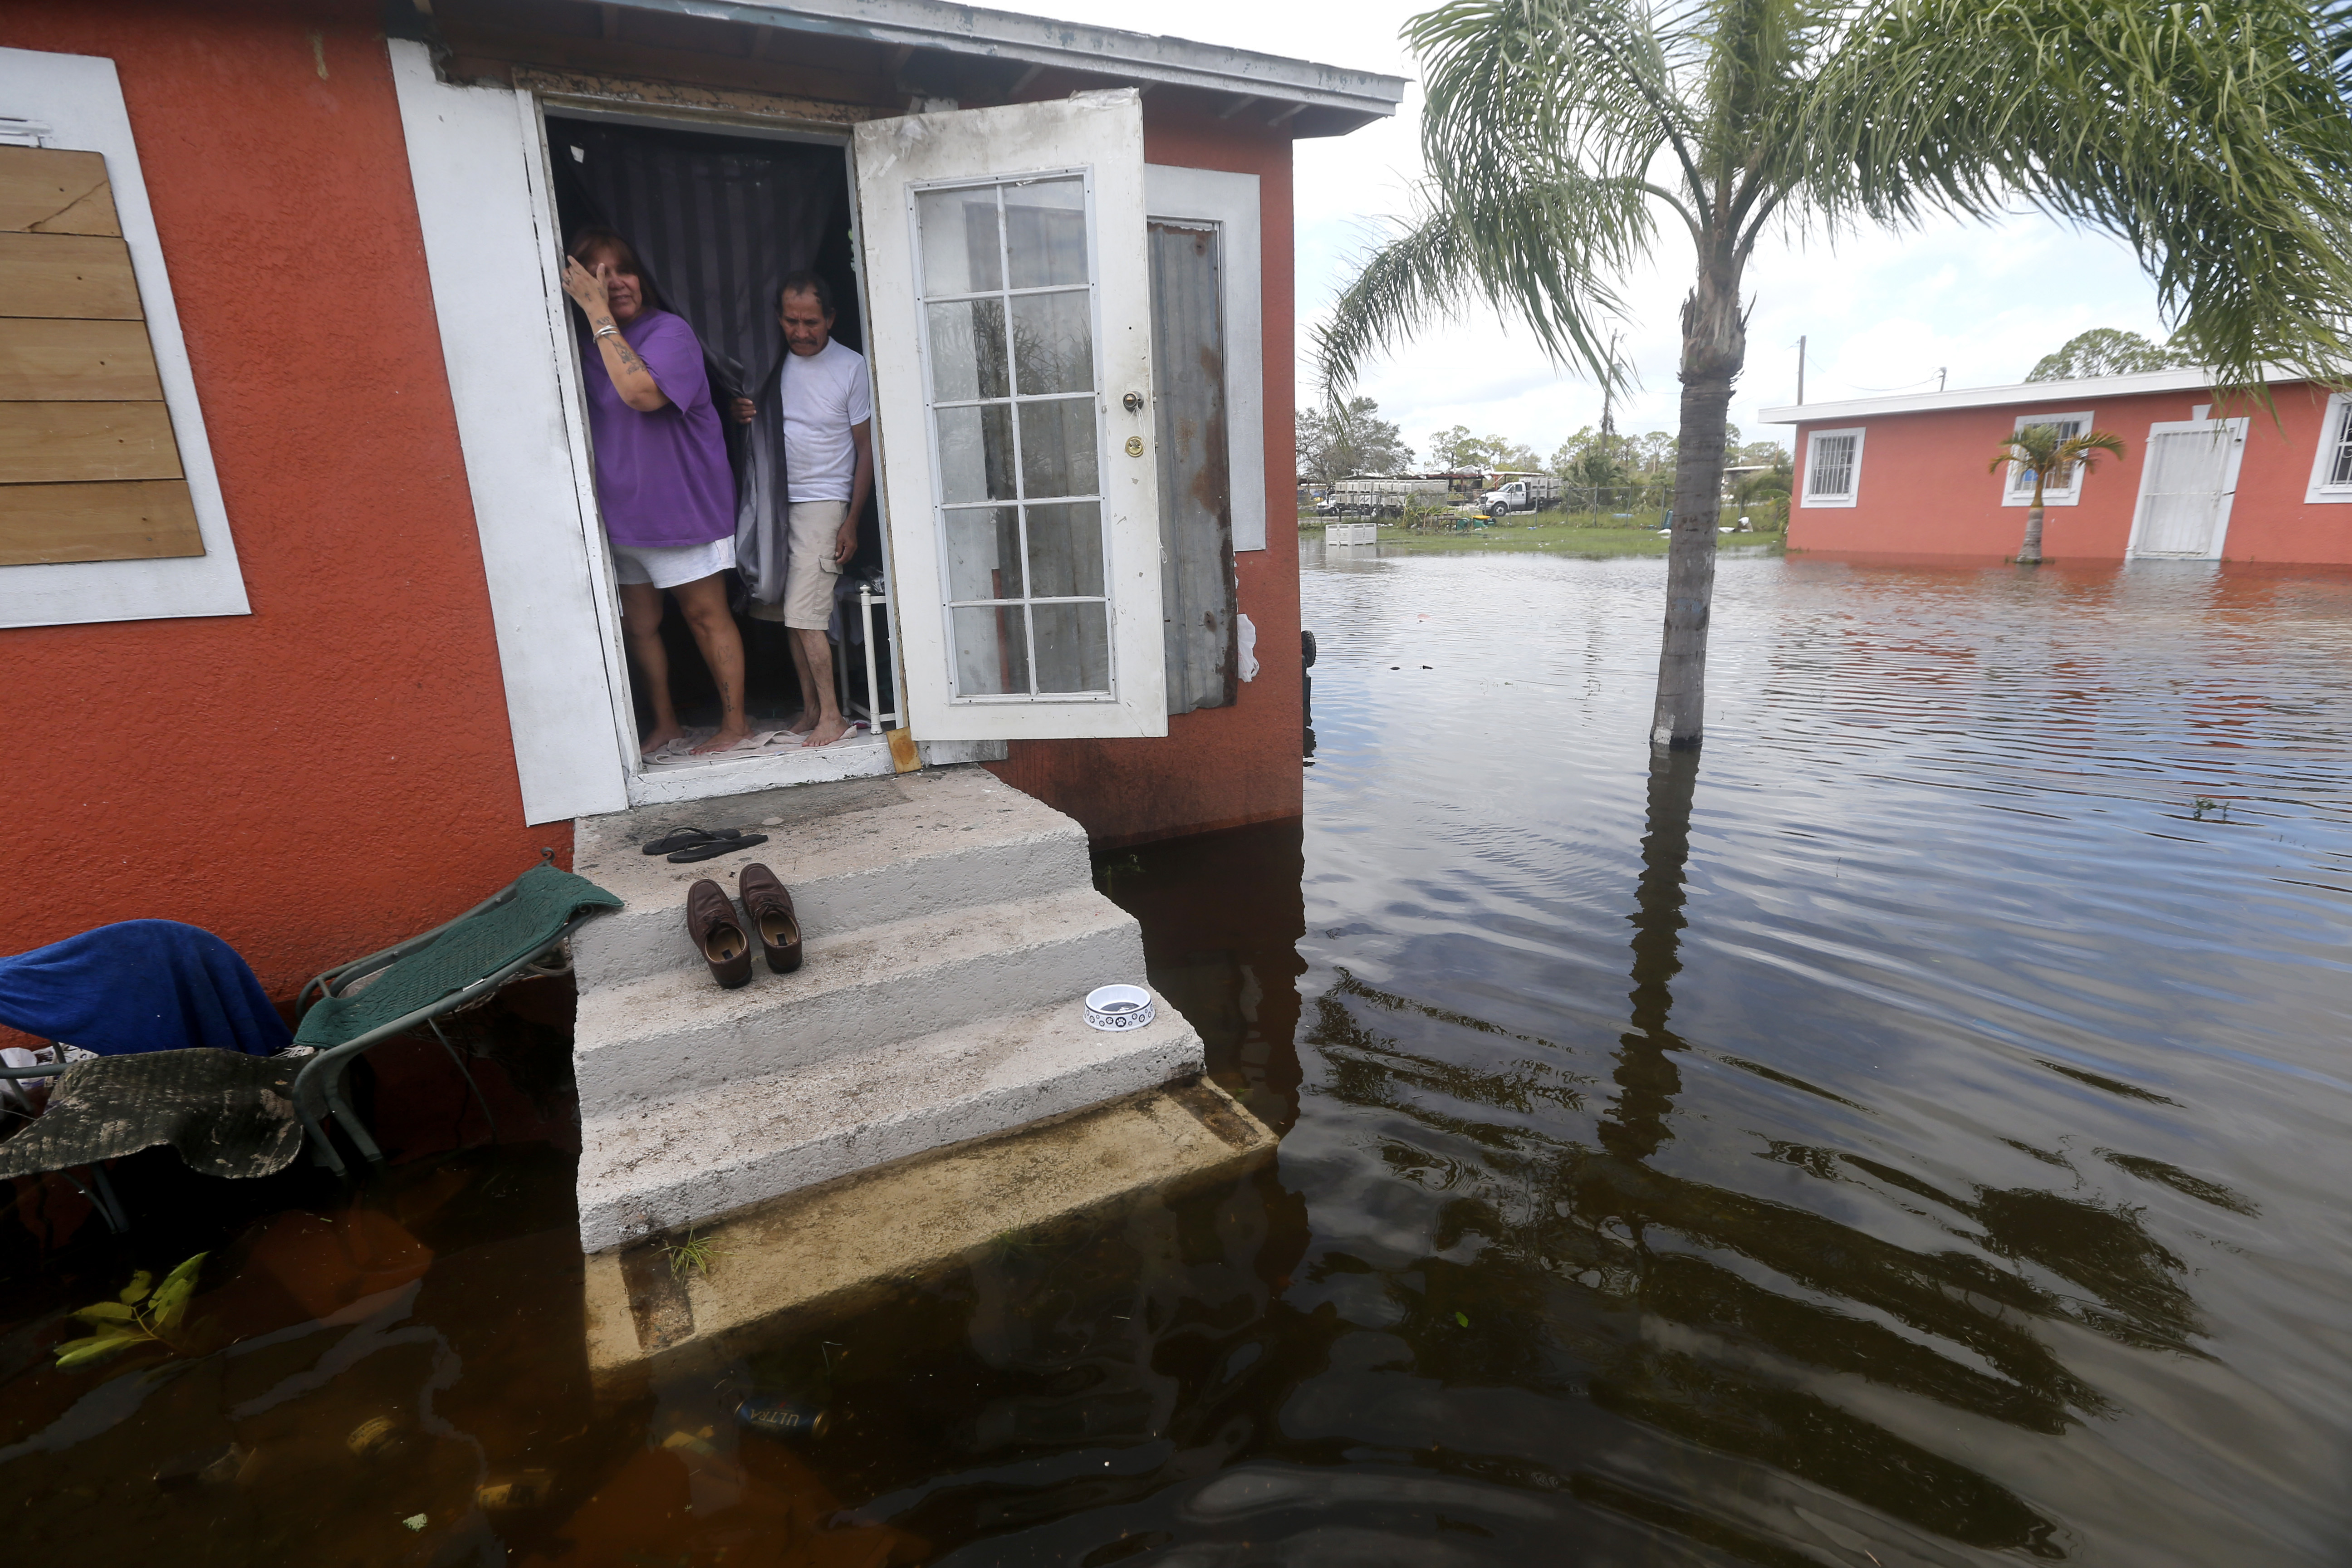 Irma The Poor-1 In this Sept. 11, 2017 file photo, Quintana and Liz Perez look at the flooding outside their home in the aftermath of Hurricane Irma, in Immokalee, Fla, one of the poorest towns in the state. Home of many day laborers and migrant workers, Immokalee sustained heavy damage from Irma that will take months to overcome. (AP Photo/Gerald Herbert)